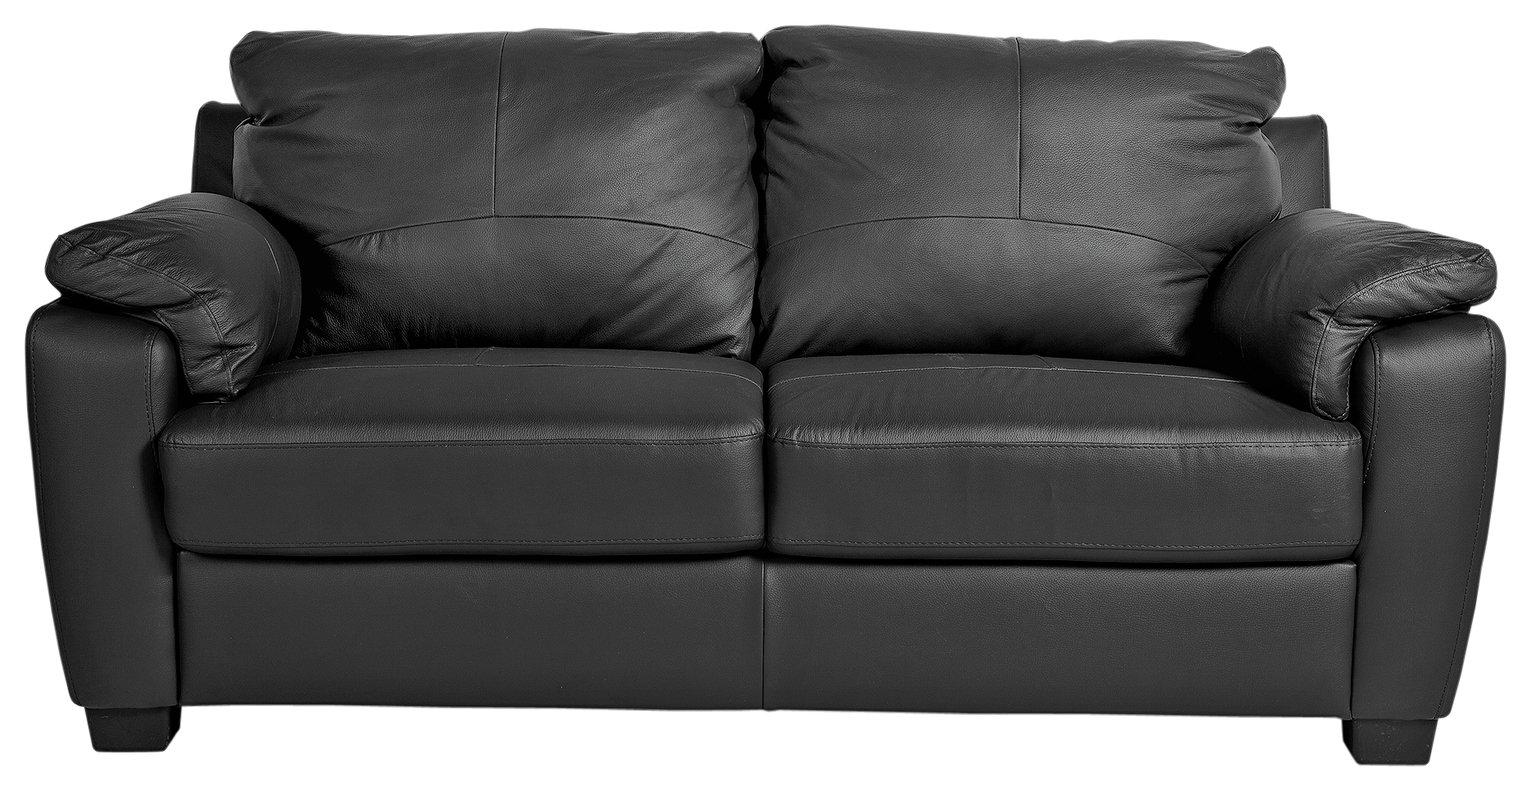 HOME - Antonio 2 Seater - Leather/Leather Effect Sofa - Black